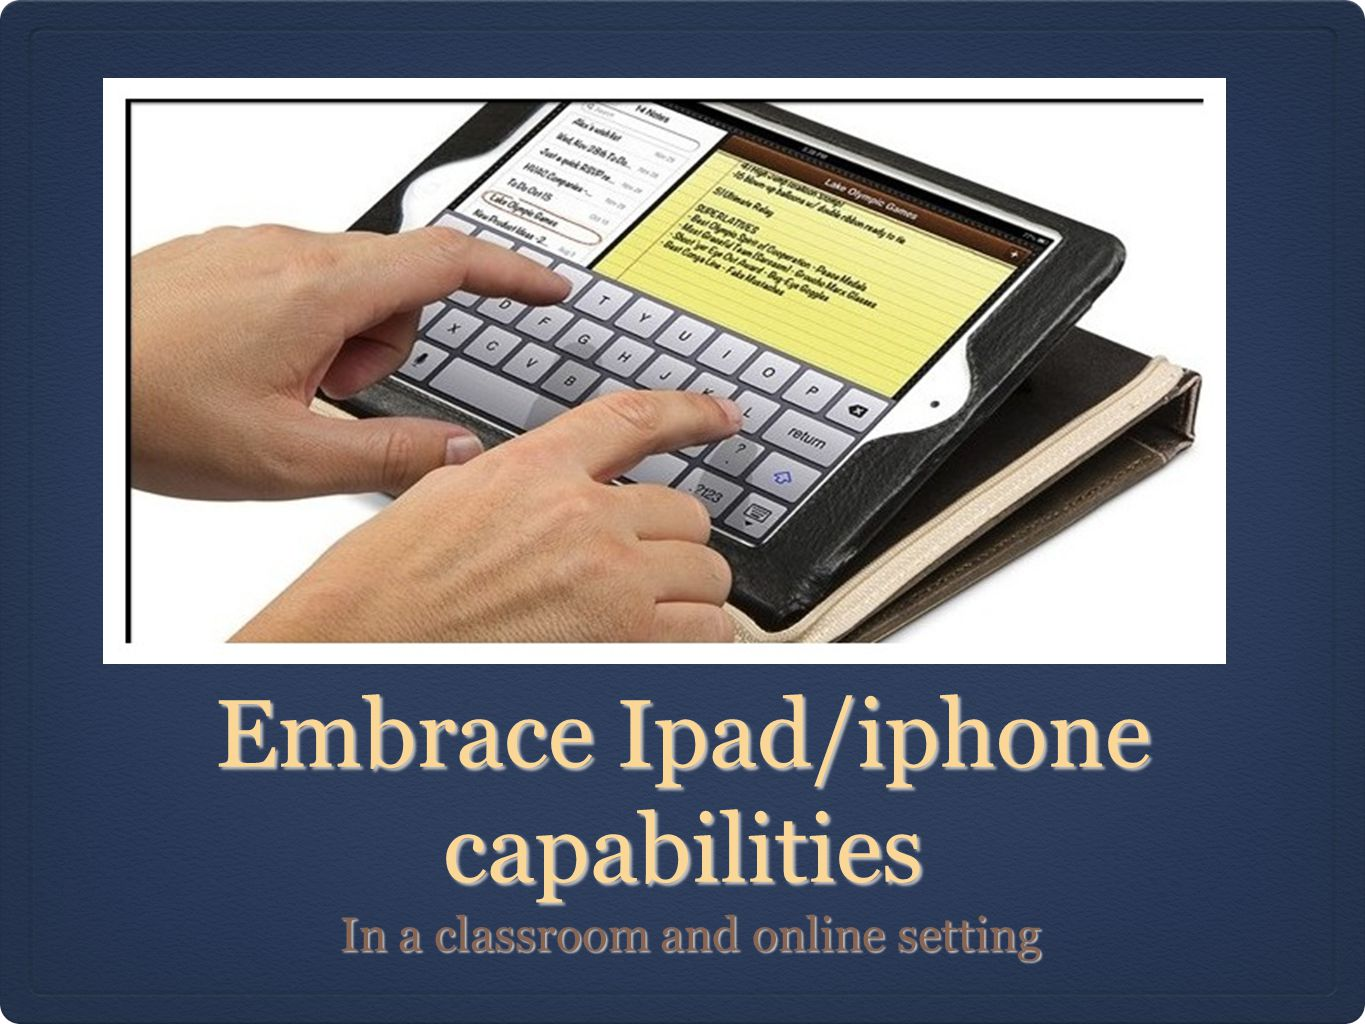 Embrace Ipad/iphone capabilities In a classroom and online setting In a classroom and online setting